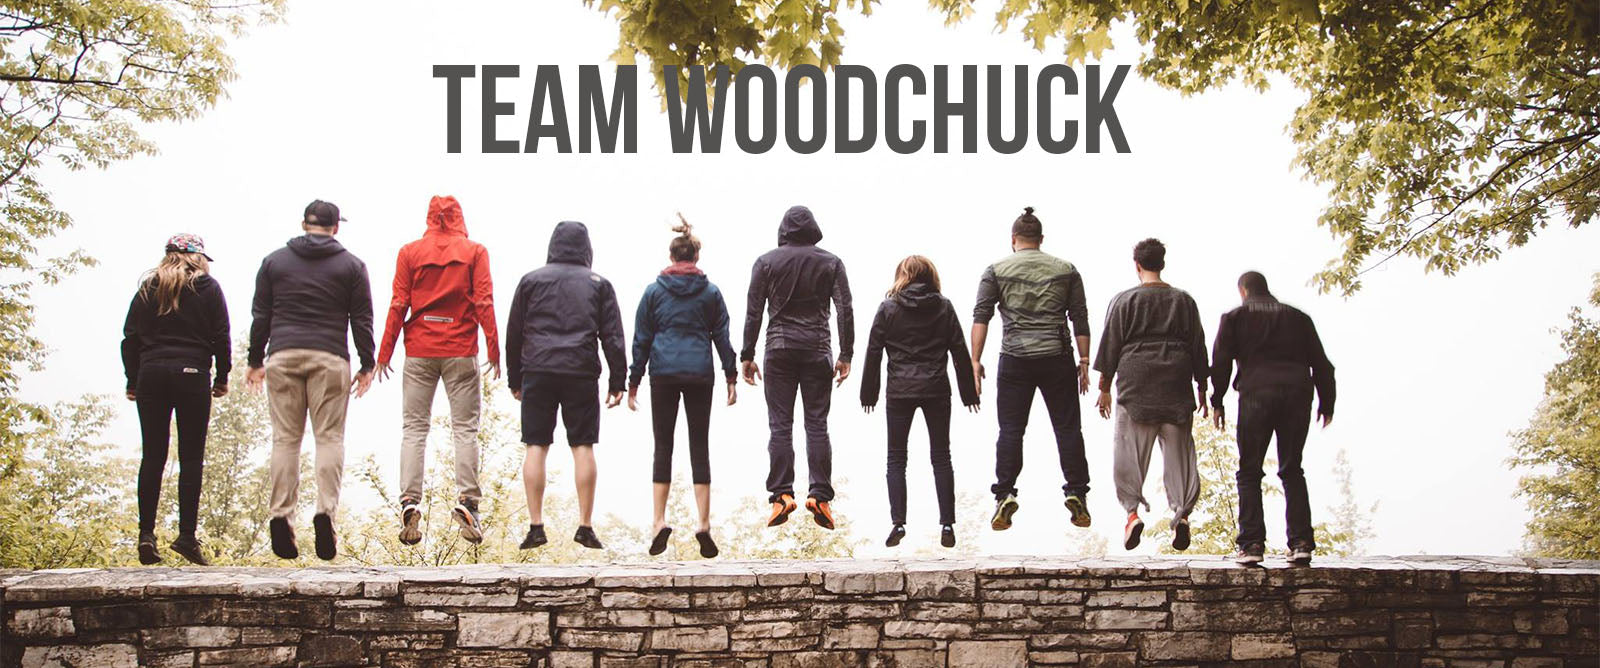 Team Woodchuck